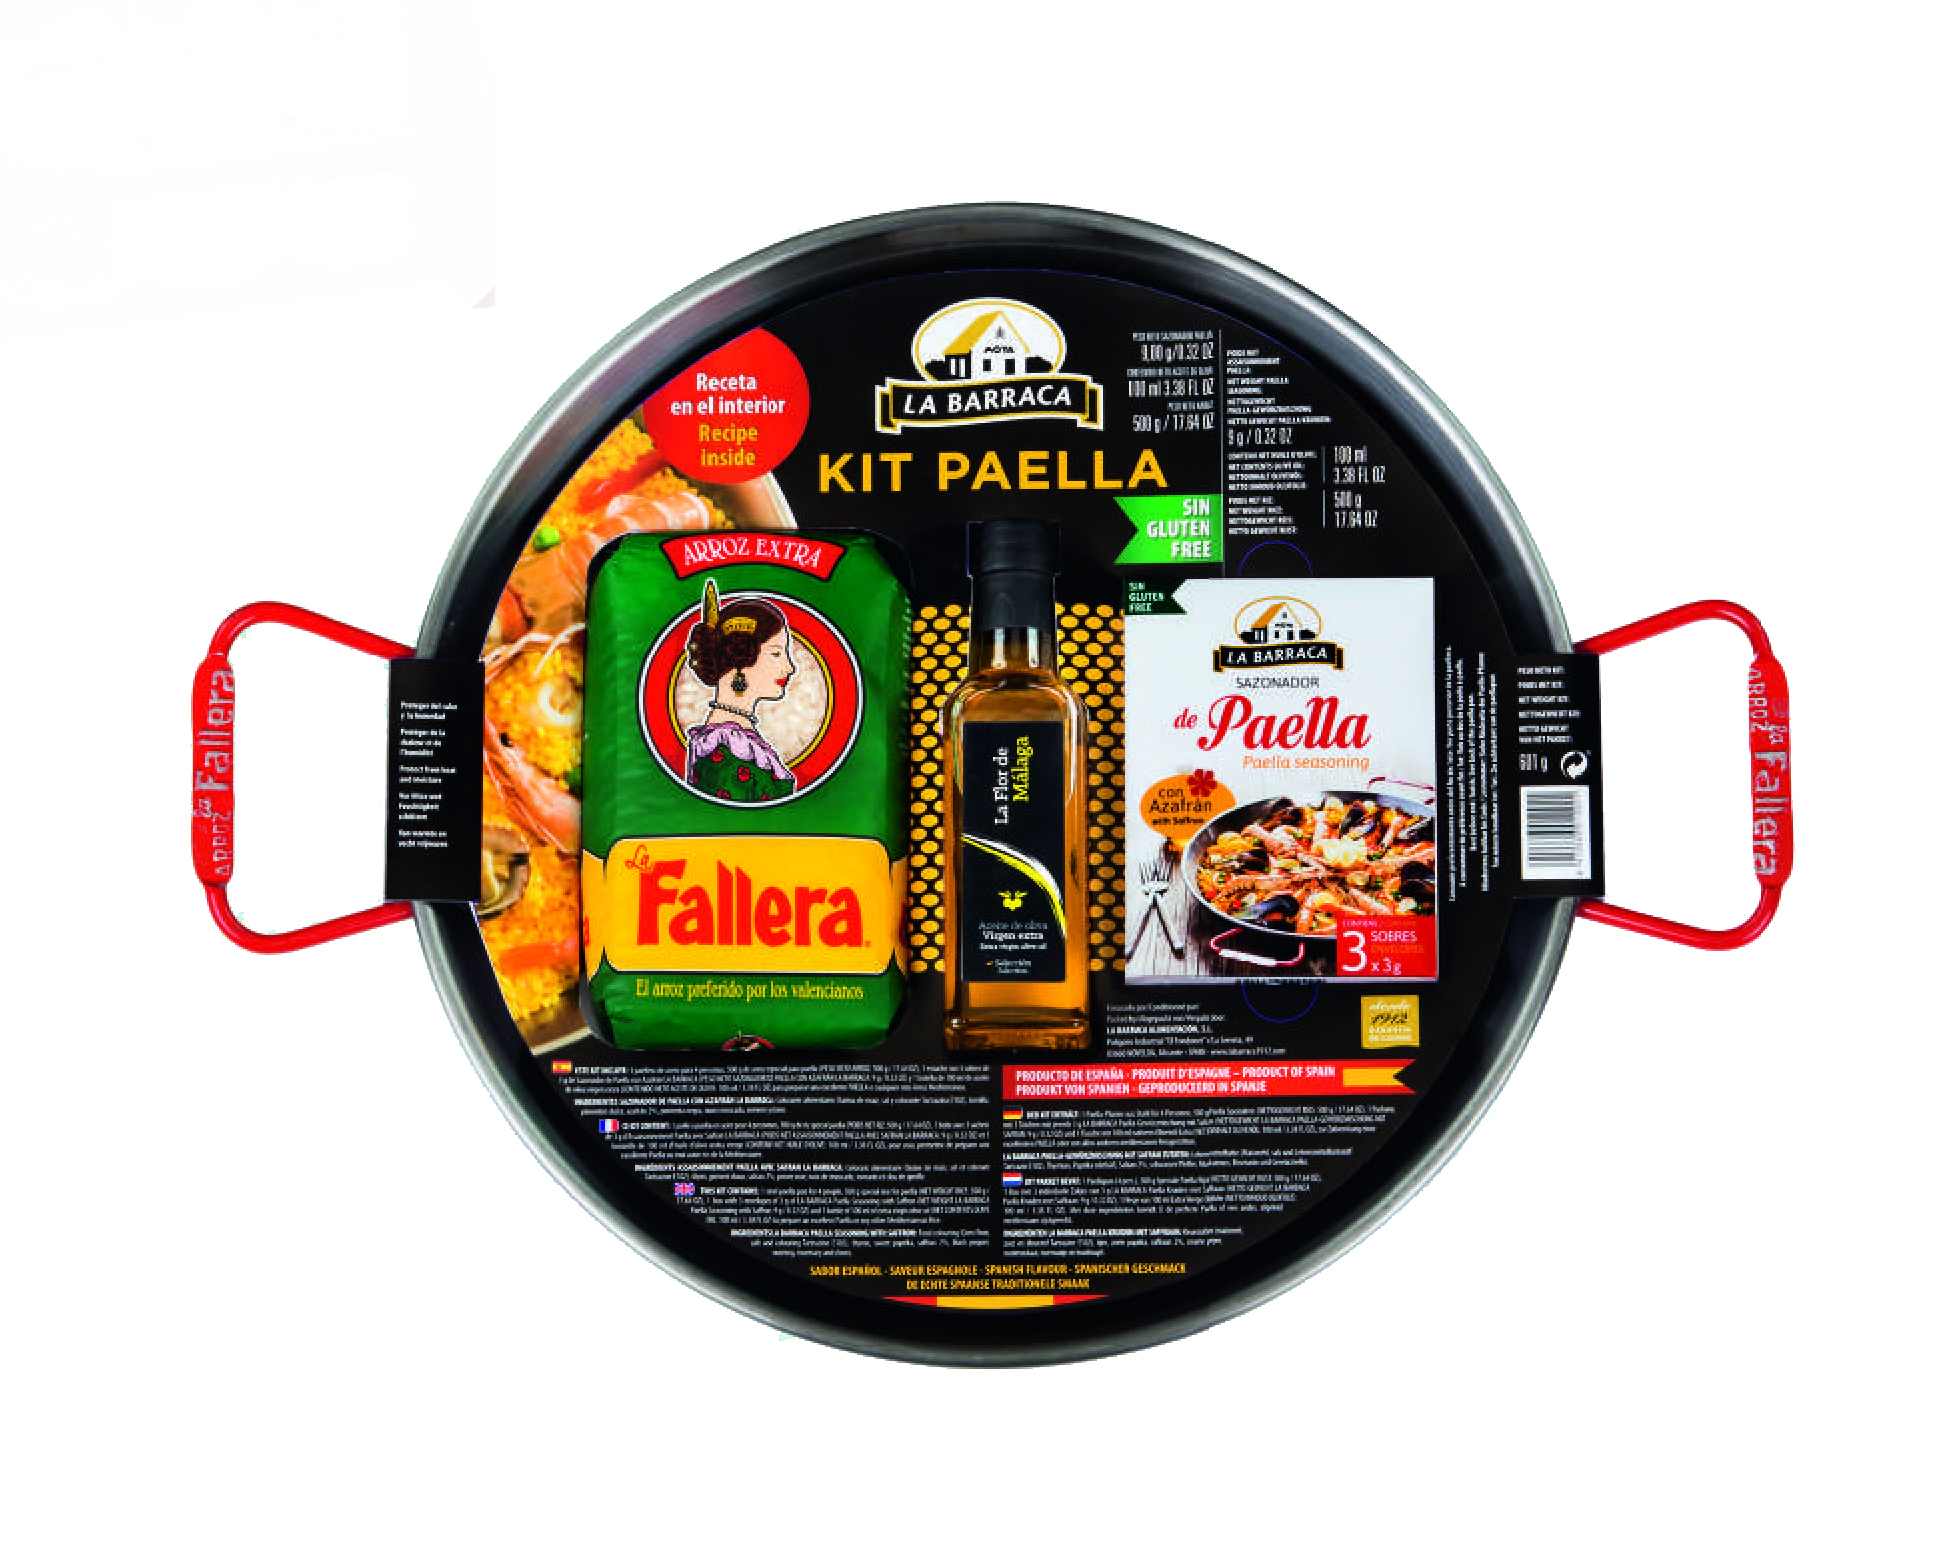 KIT PAELLA KIT PAELLA